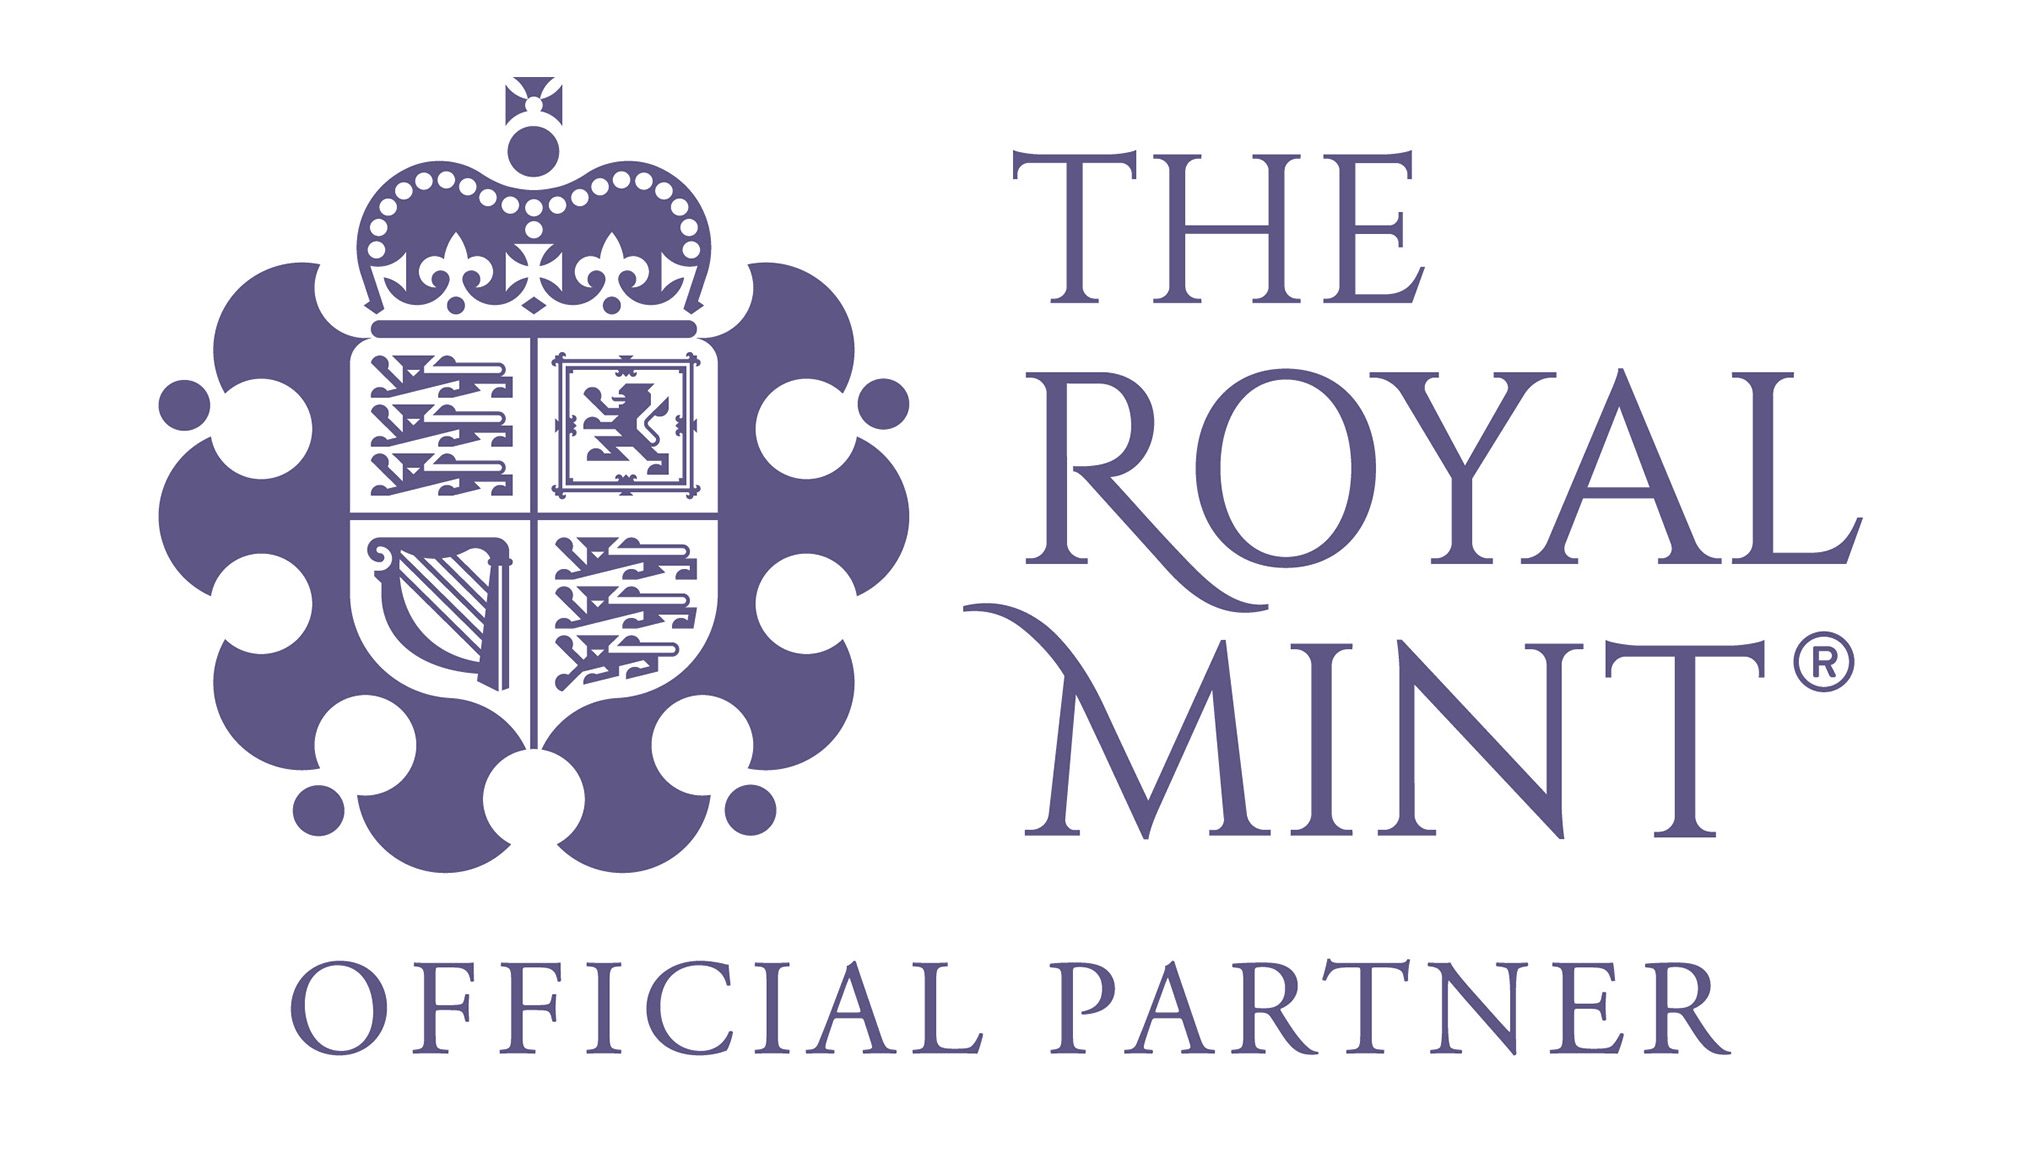 Royal Mint logo